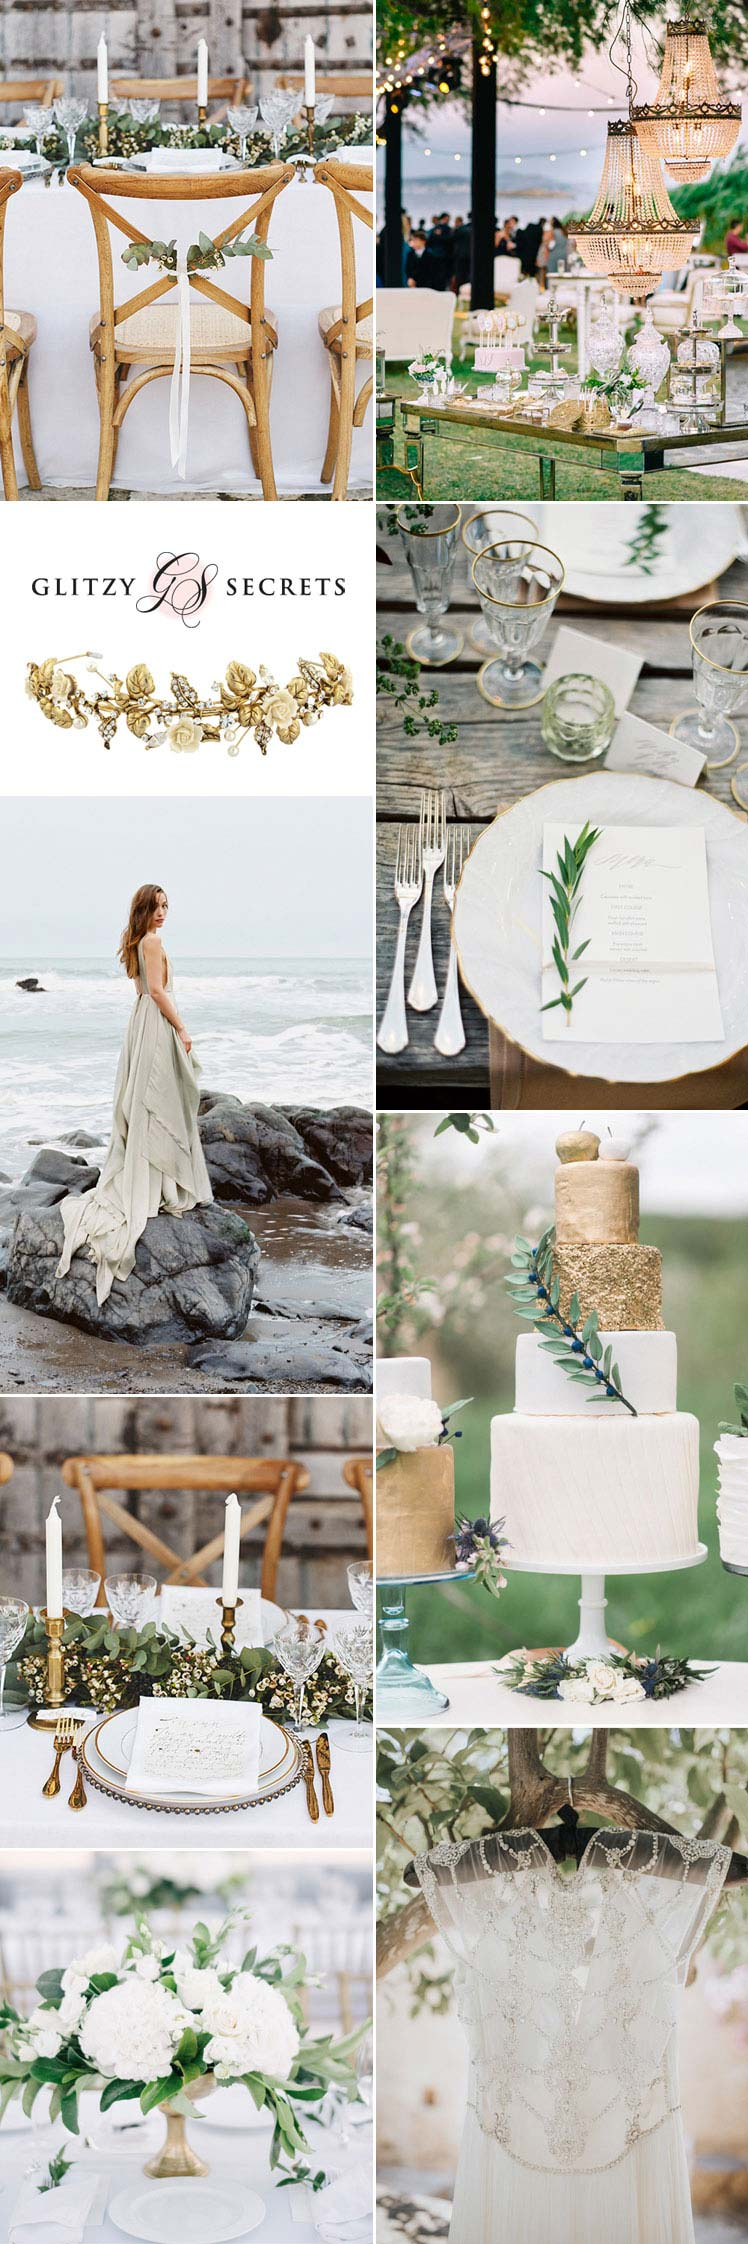 Grecian wedding theme ideas for your special day